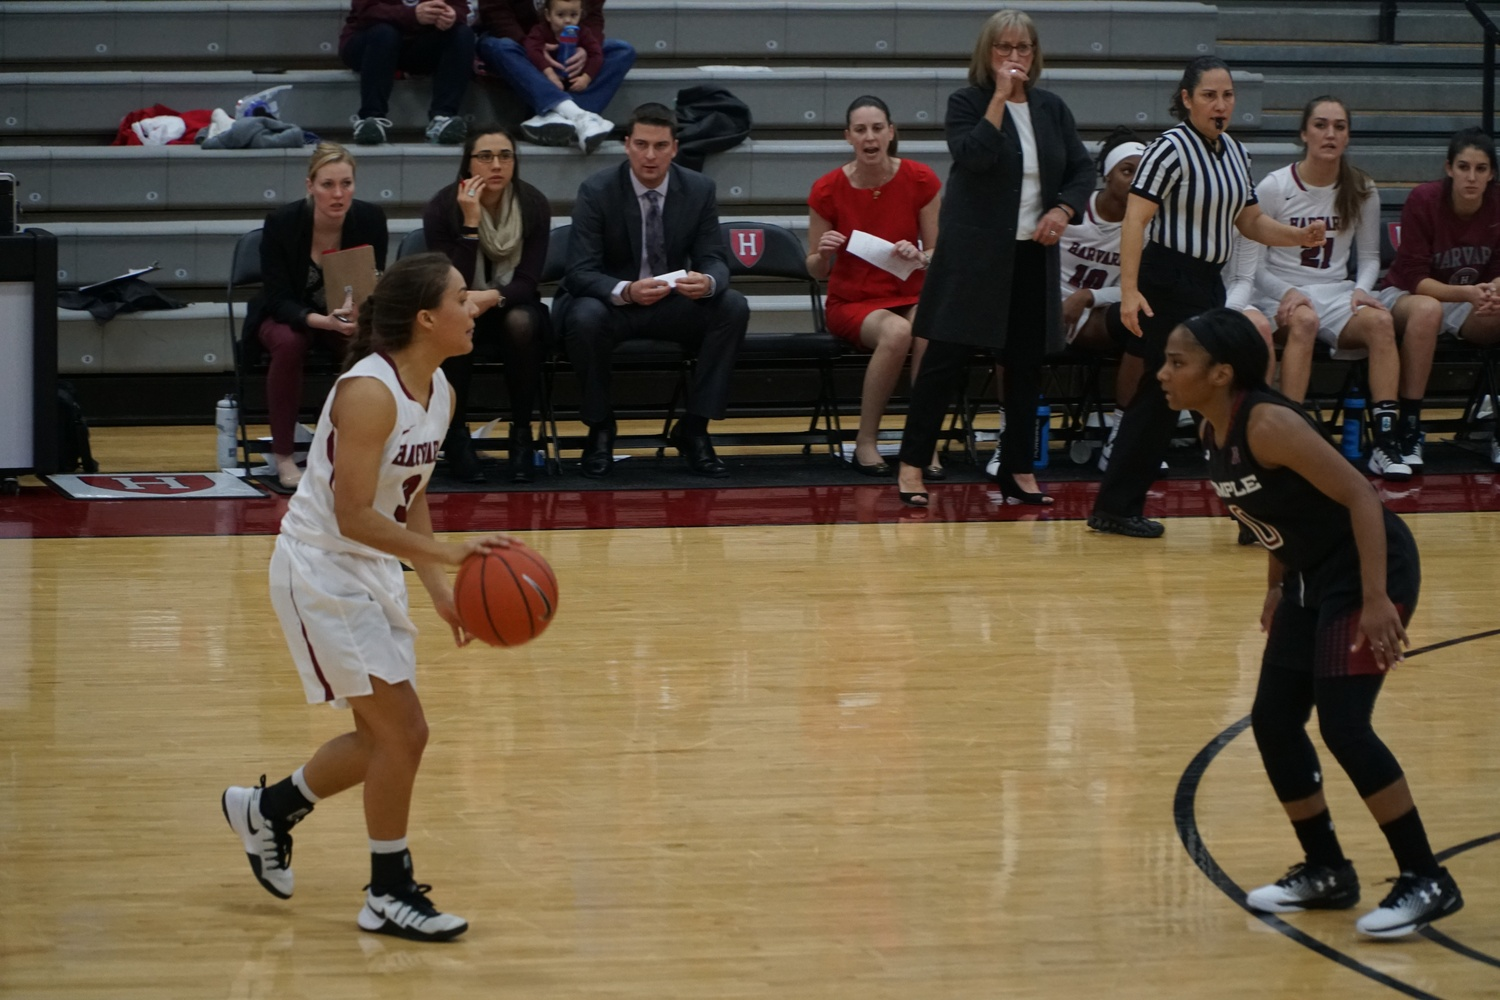 Freshman guard Katie Benzan (3), shown in action earlier this season, had a team-leading 16 points and seven assists against UNC Asheville.